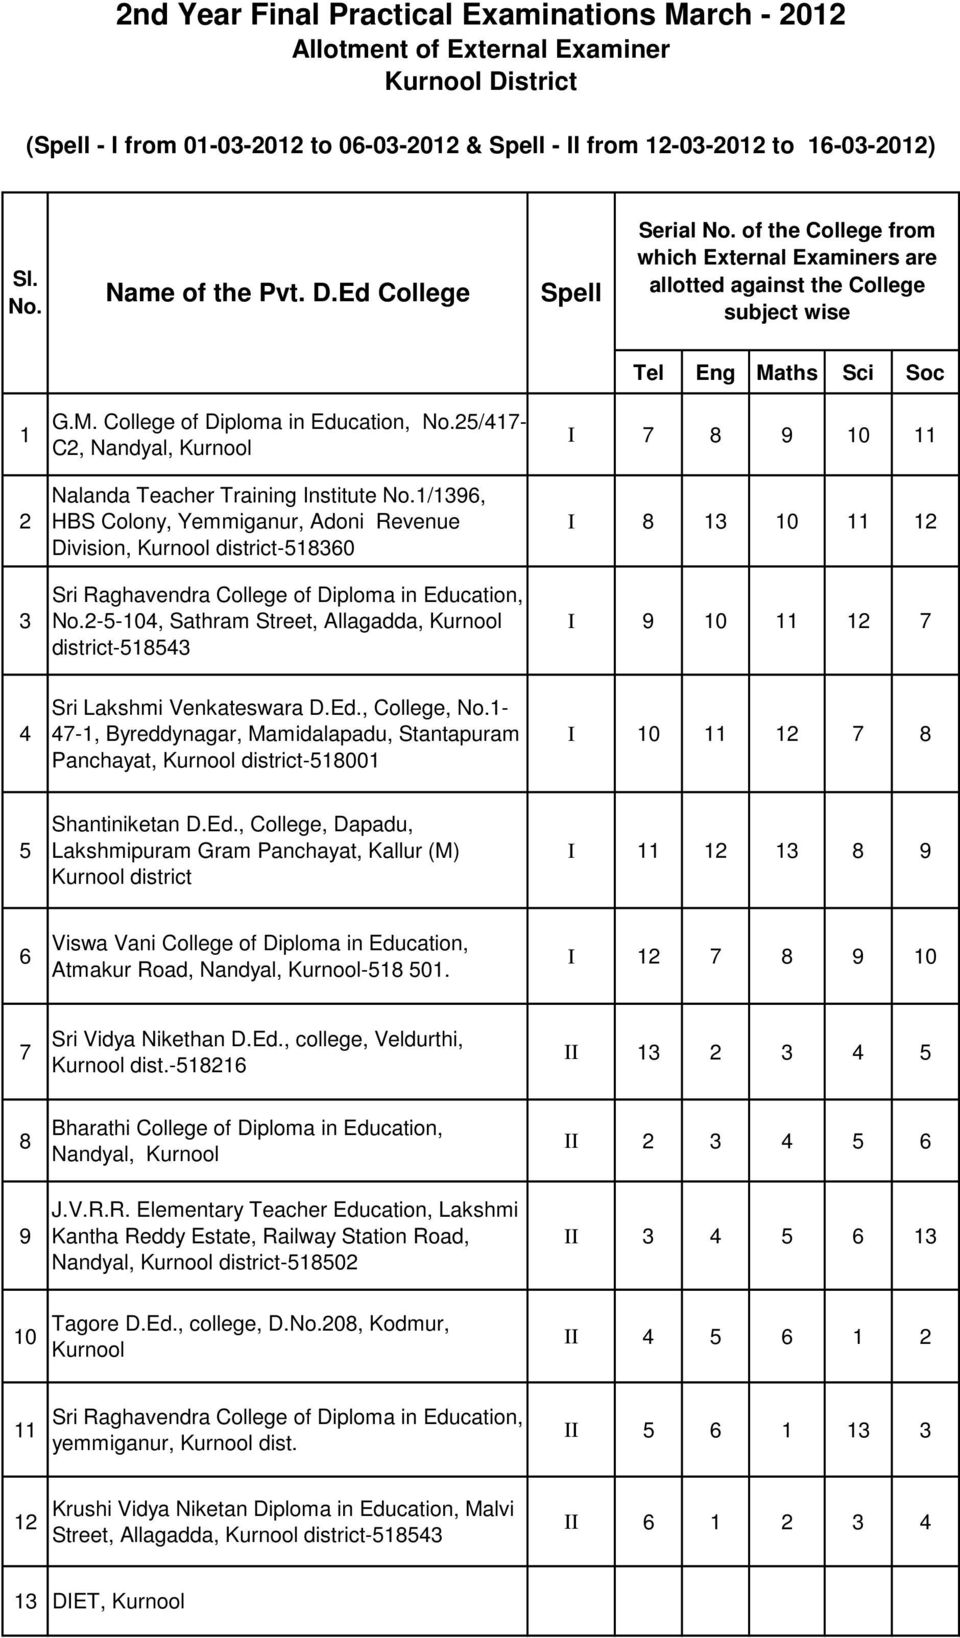 College of Diploma in Education, /- C, Nandyal, Kurnool Nalanda Teacher Training Institute /, HBS Colony, Yemmiganur, Adoni Revenue Division, Kurnool district-0 Sri Raghavendra College of Diploma in